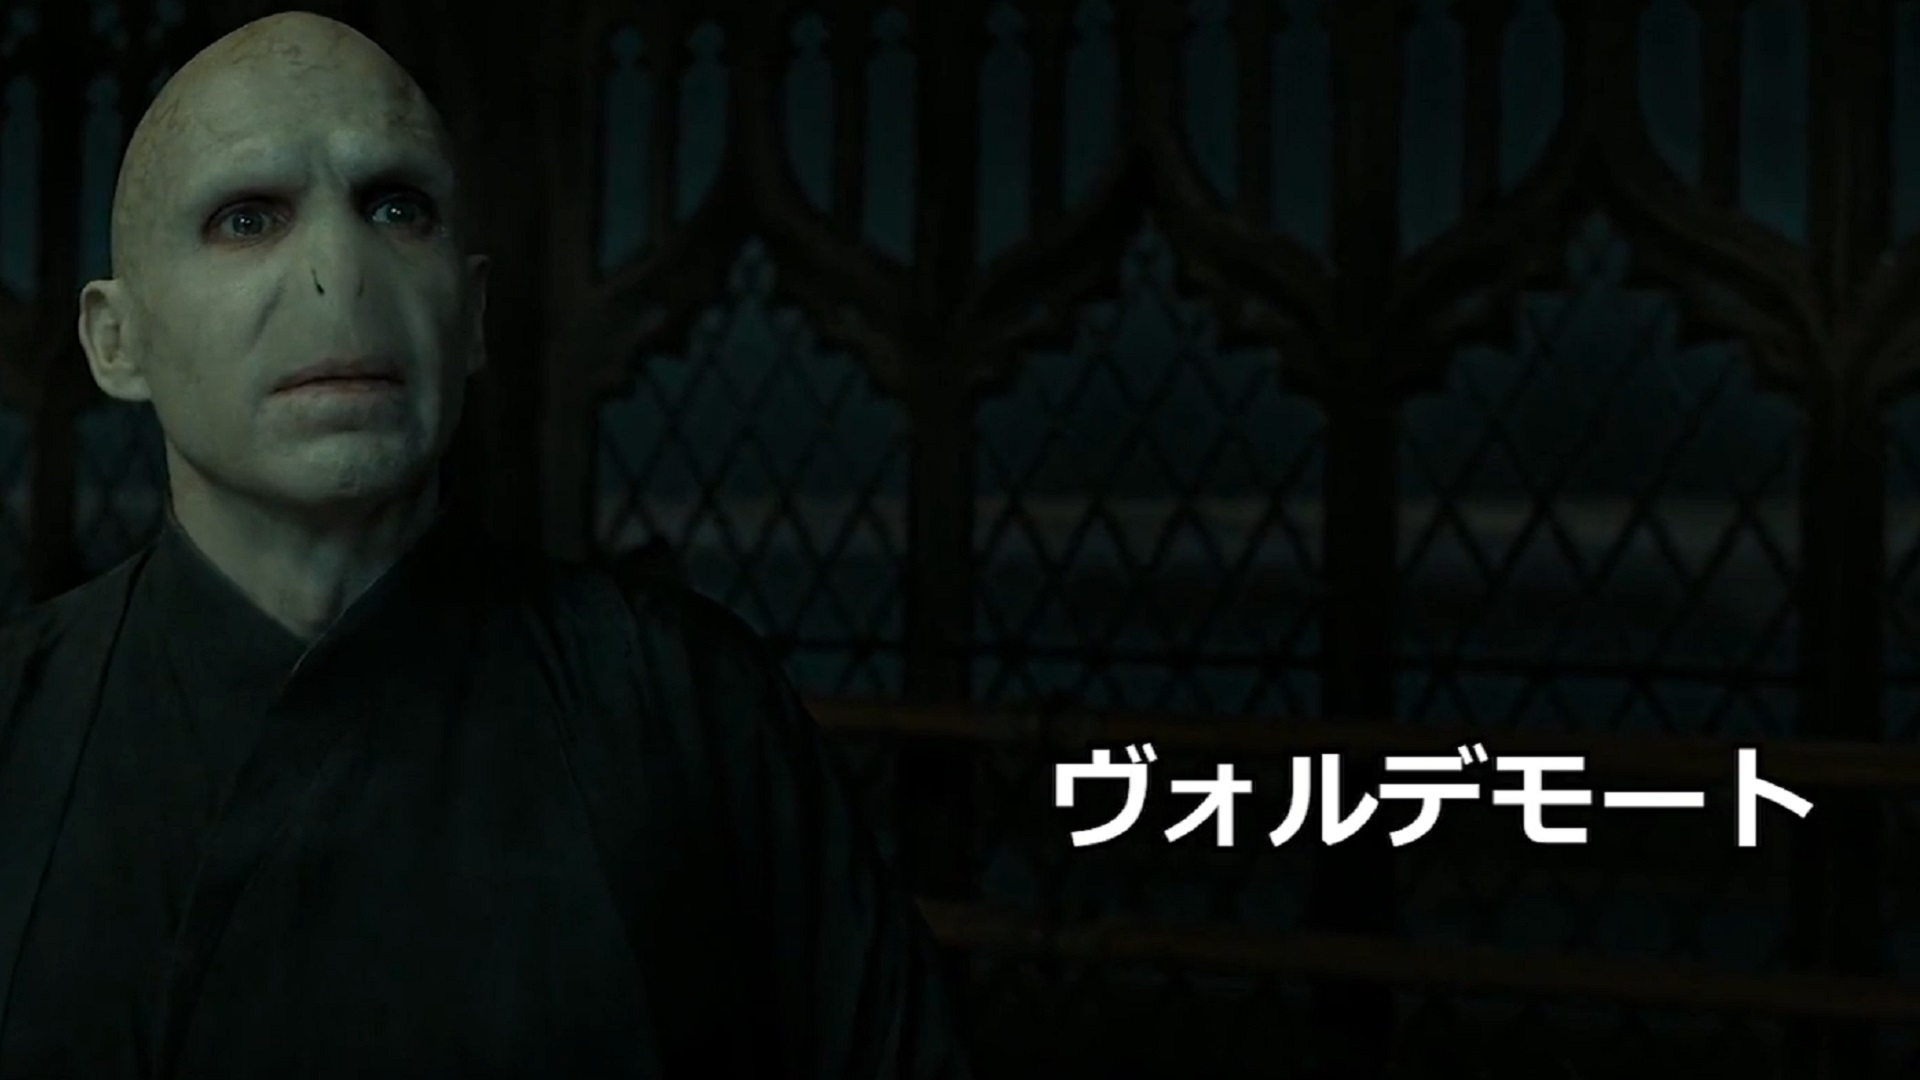 harry-potter-gets-the-anime-opening-weve-always-wanted-social.jpg